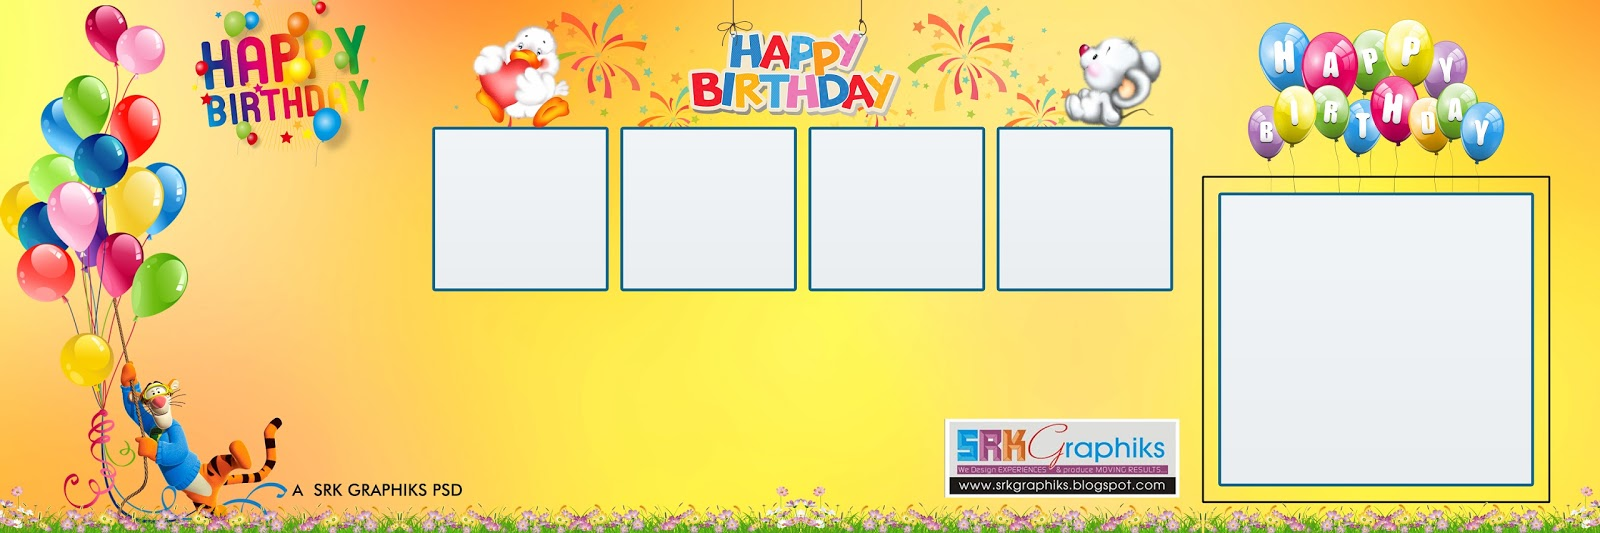 1st birthday banner background design ; 30